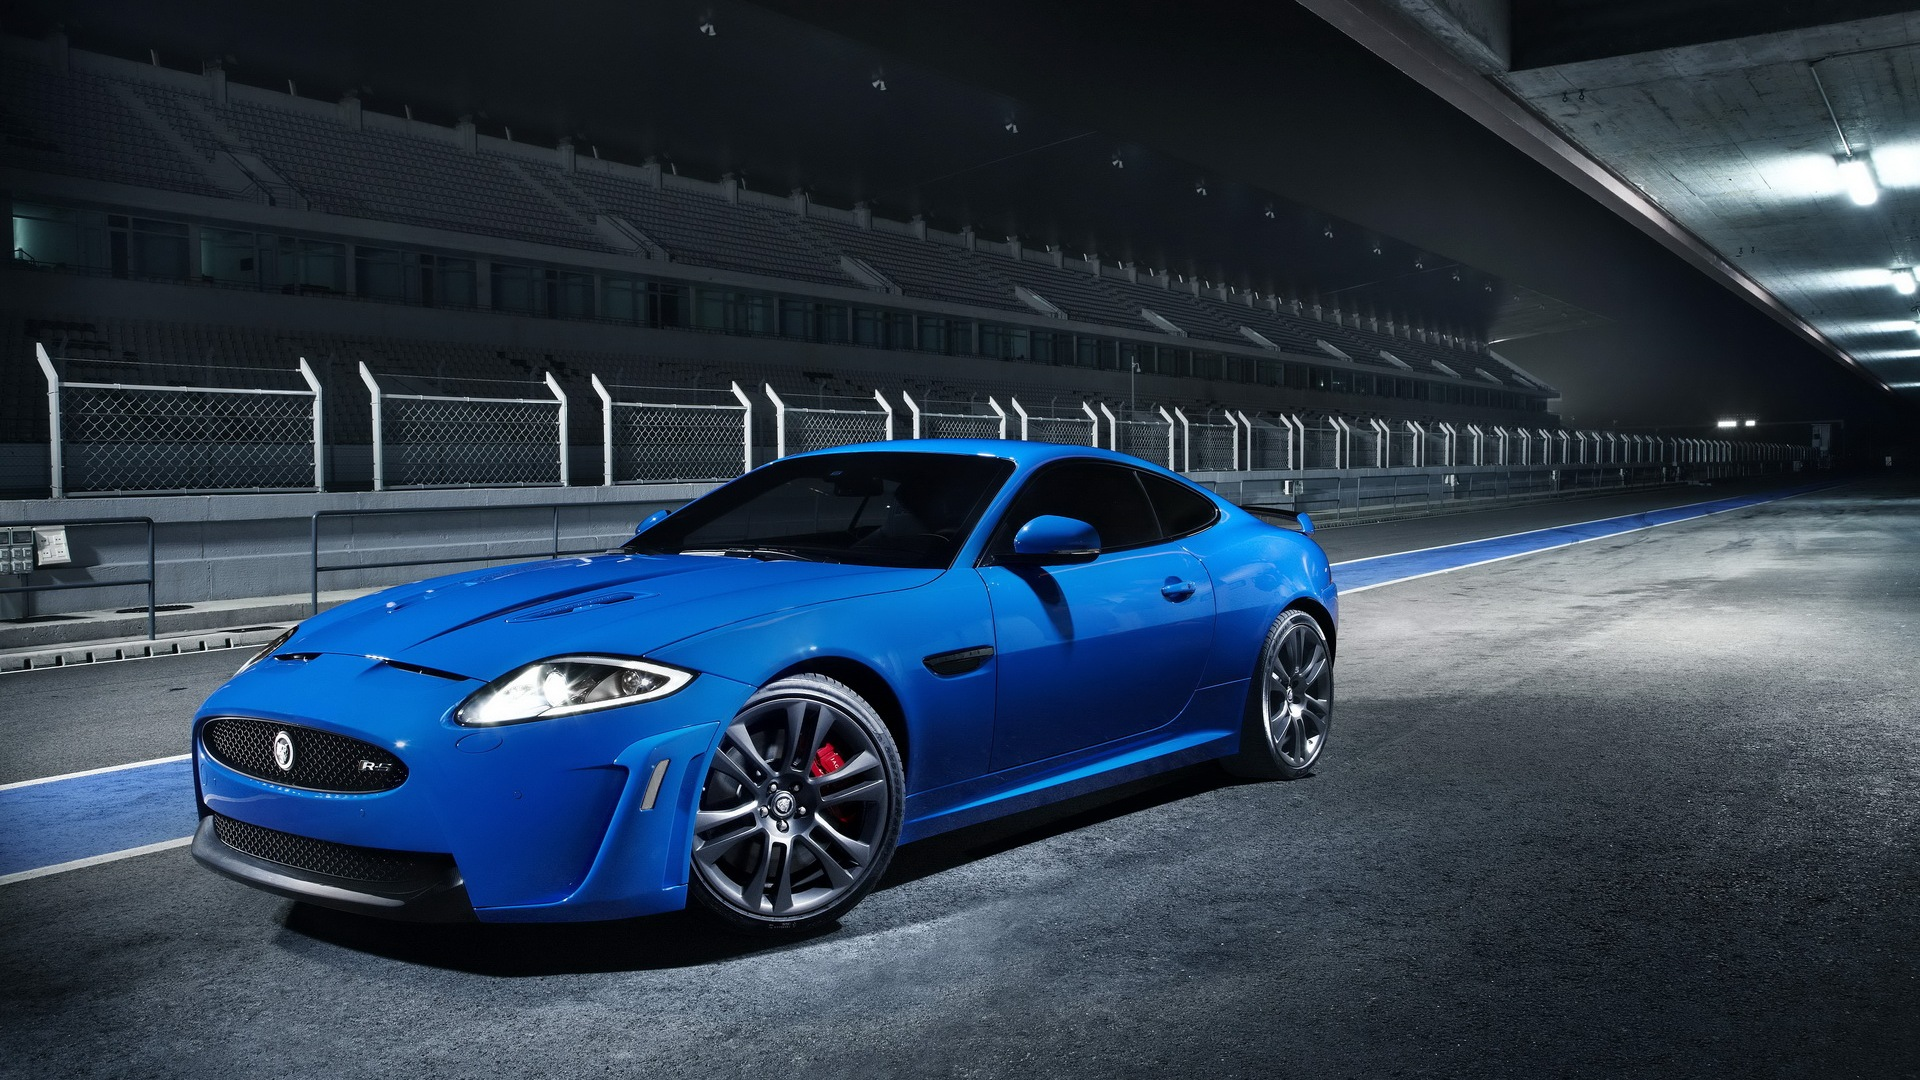 Mobil Sport Full Hd Jaguar HD Wallpaper